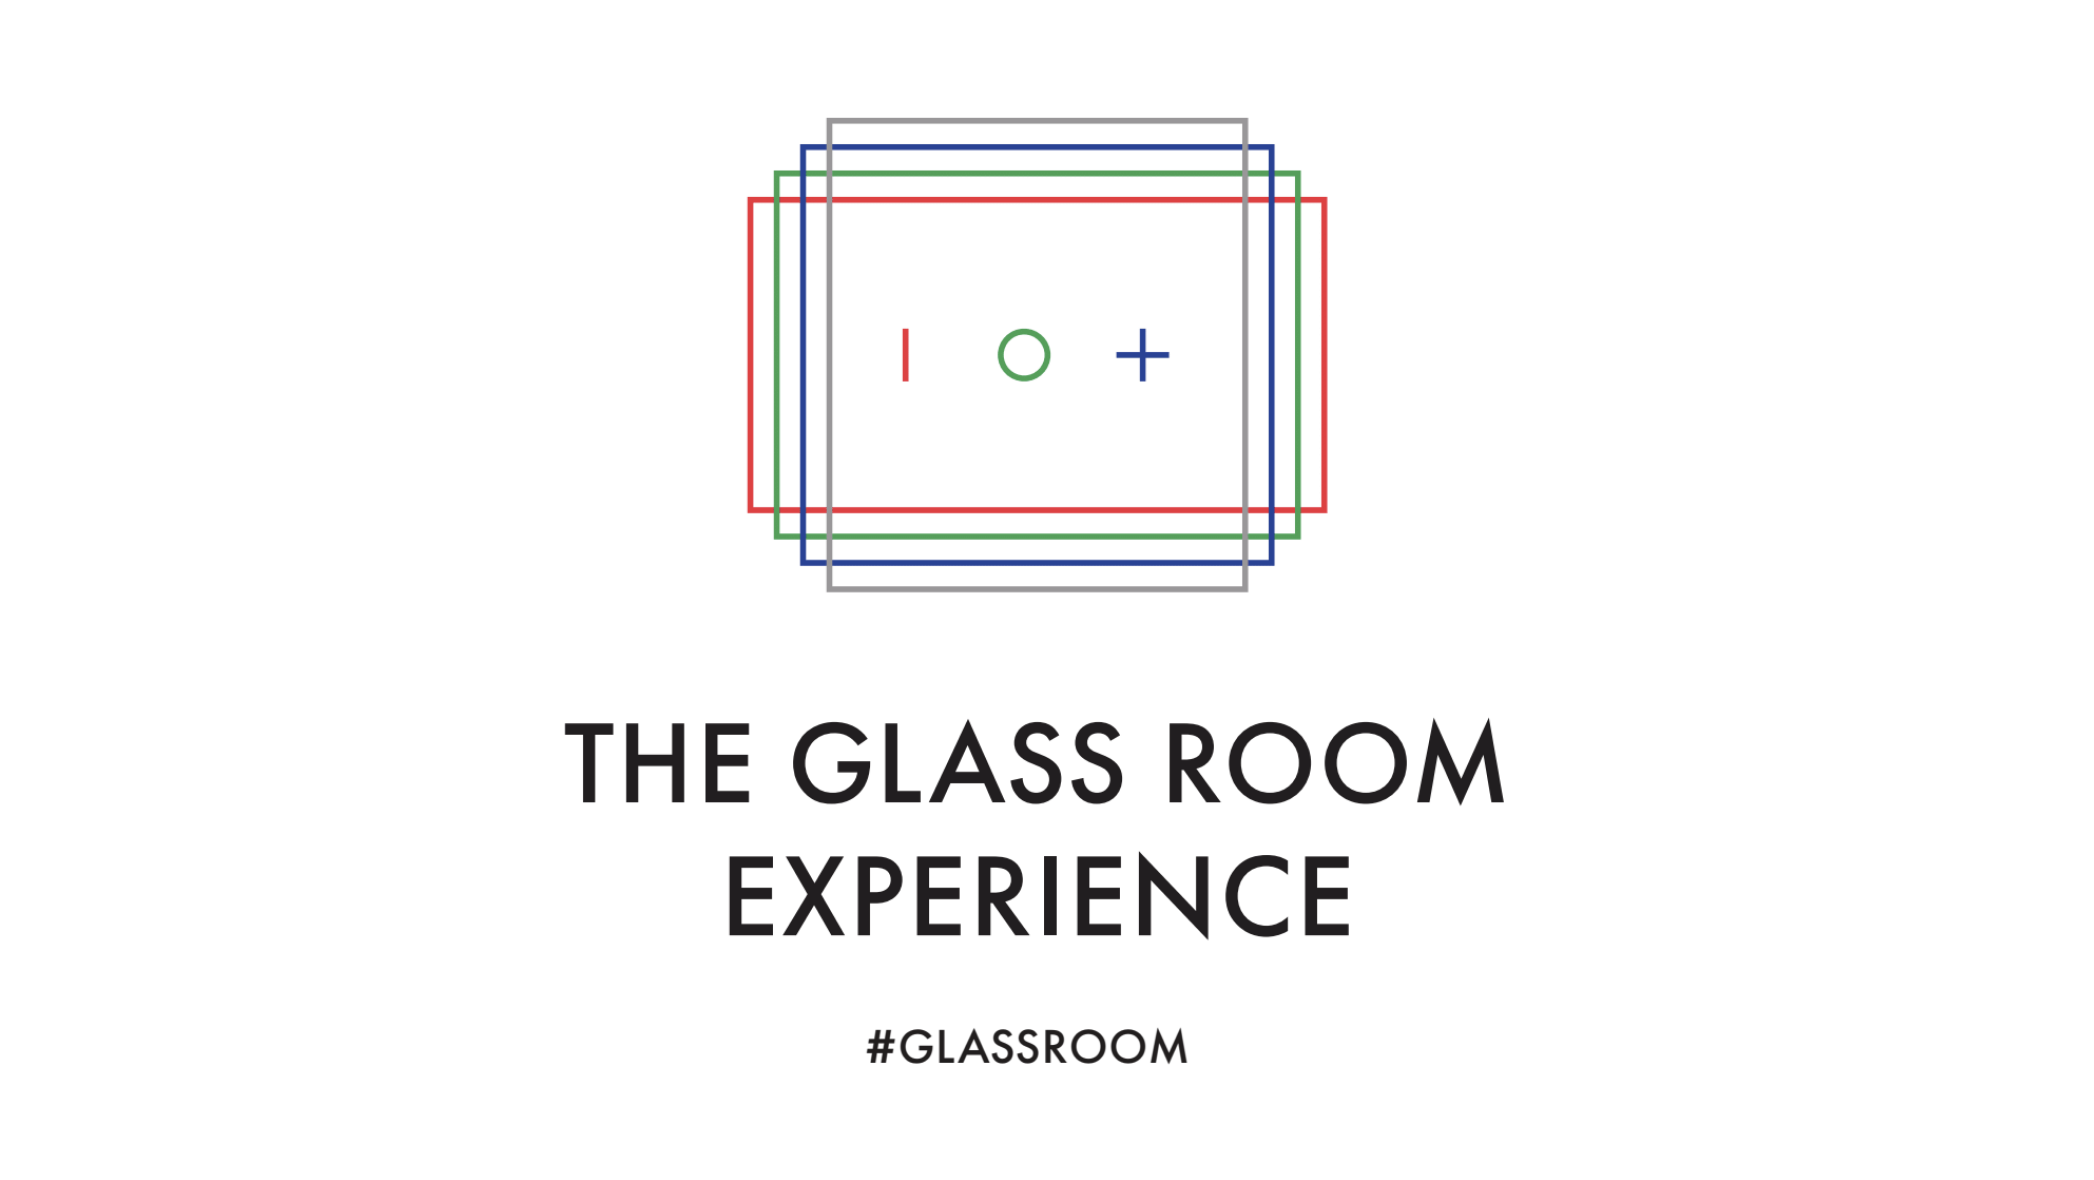 The Glass Room Experience IOT